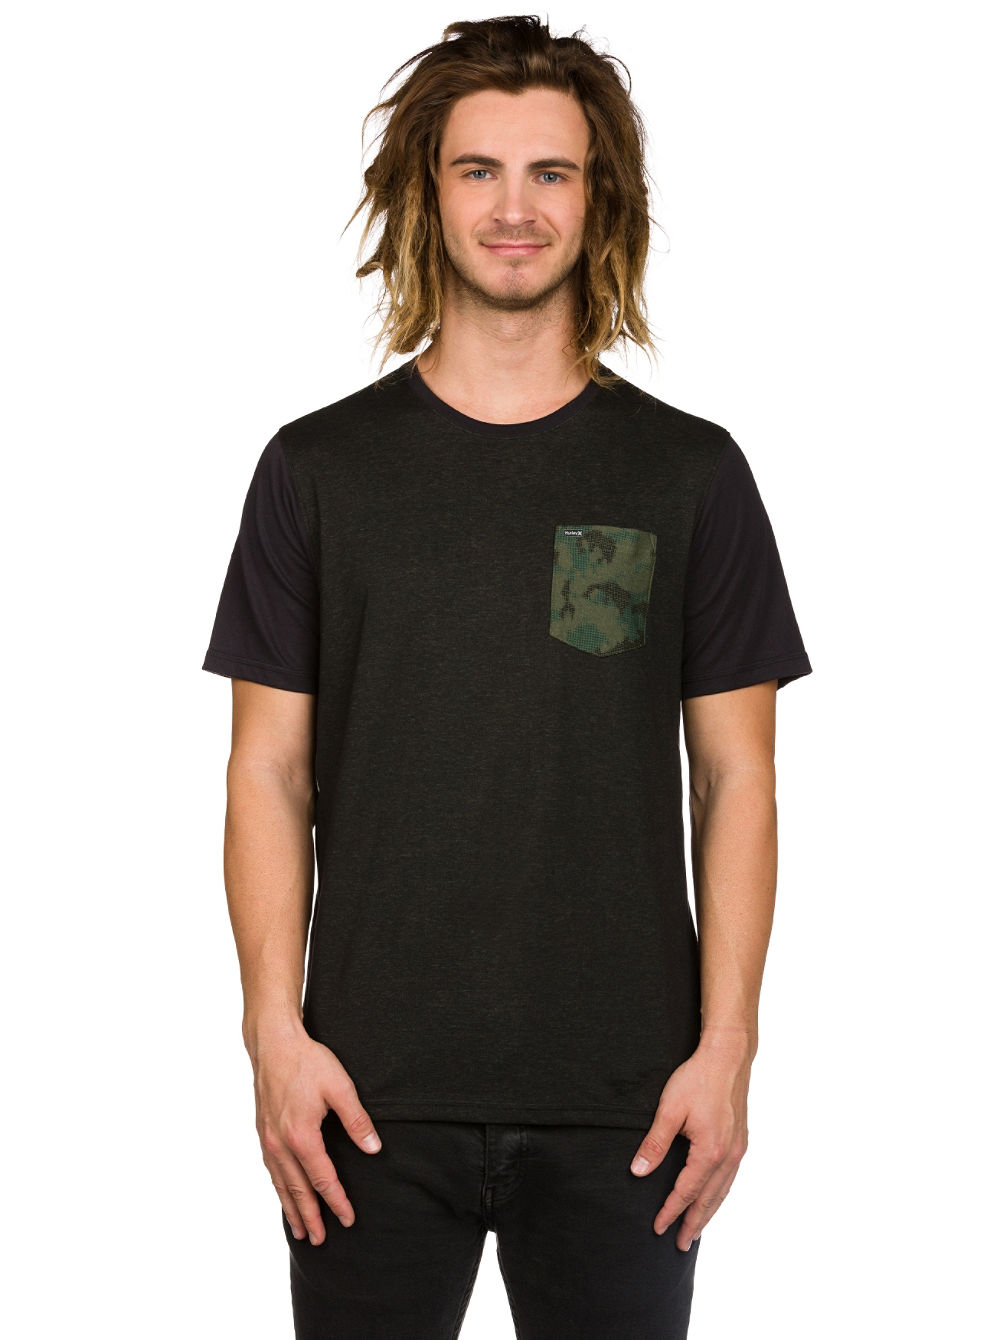 Buy hurley dri fit lagos pocket crew t shirt online at for Buy dri fit shirts